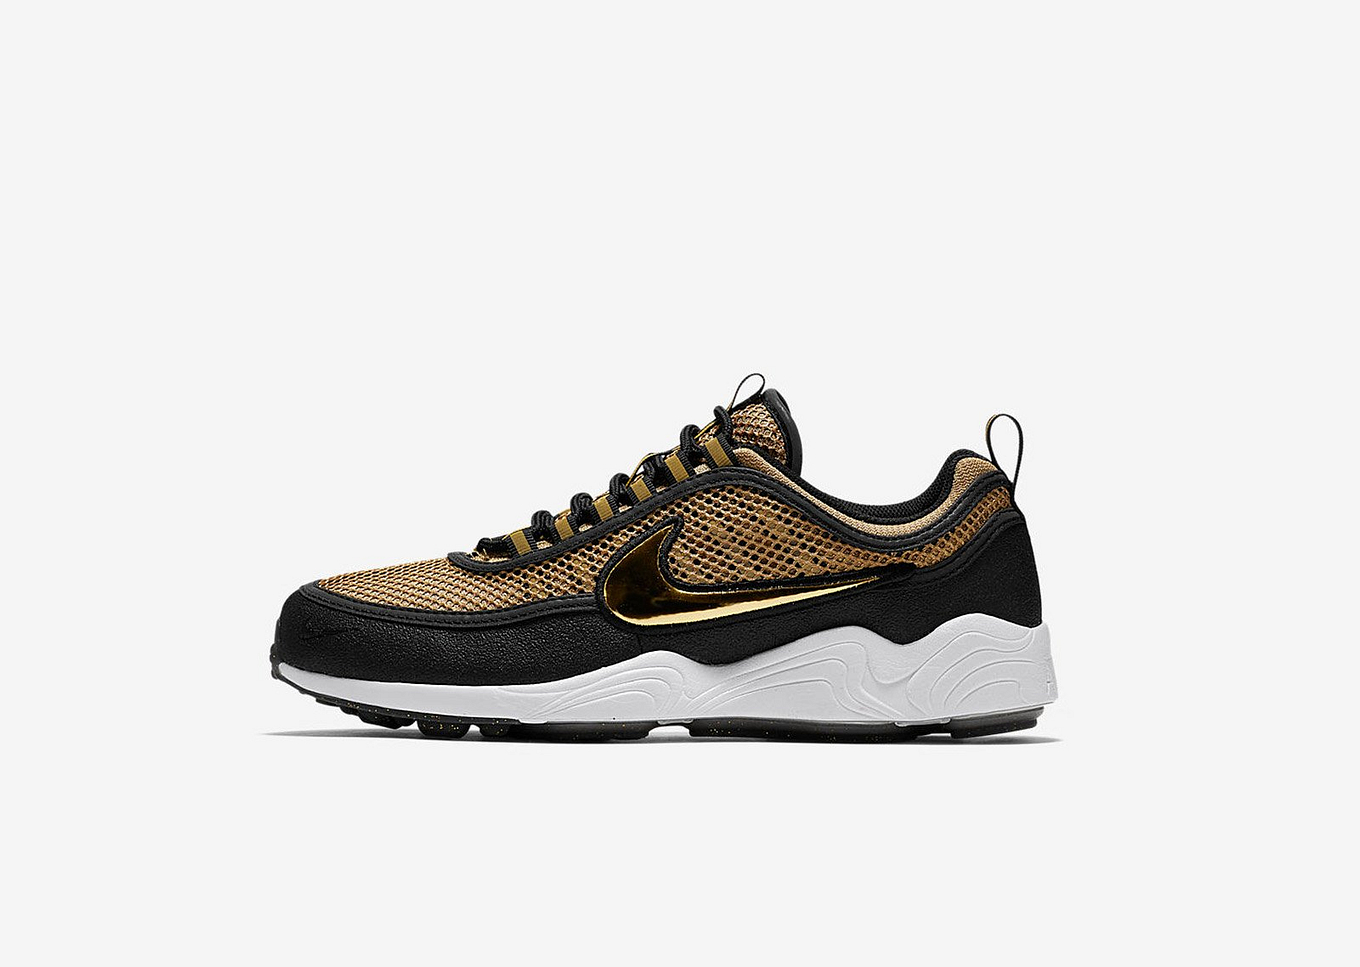 nikelab-air-zoom-spiridon-metallic-gold-gessato-5